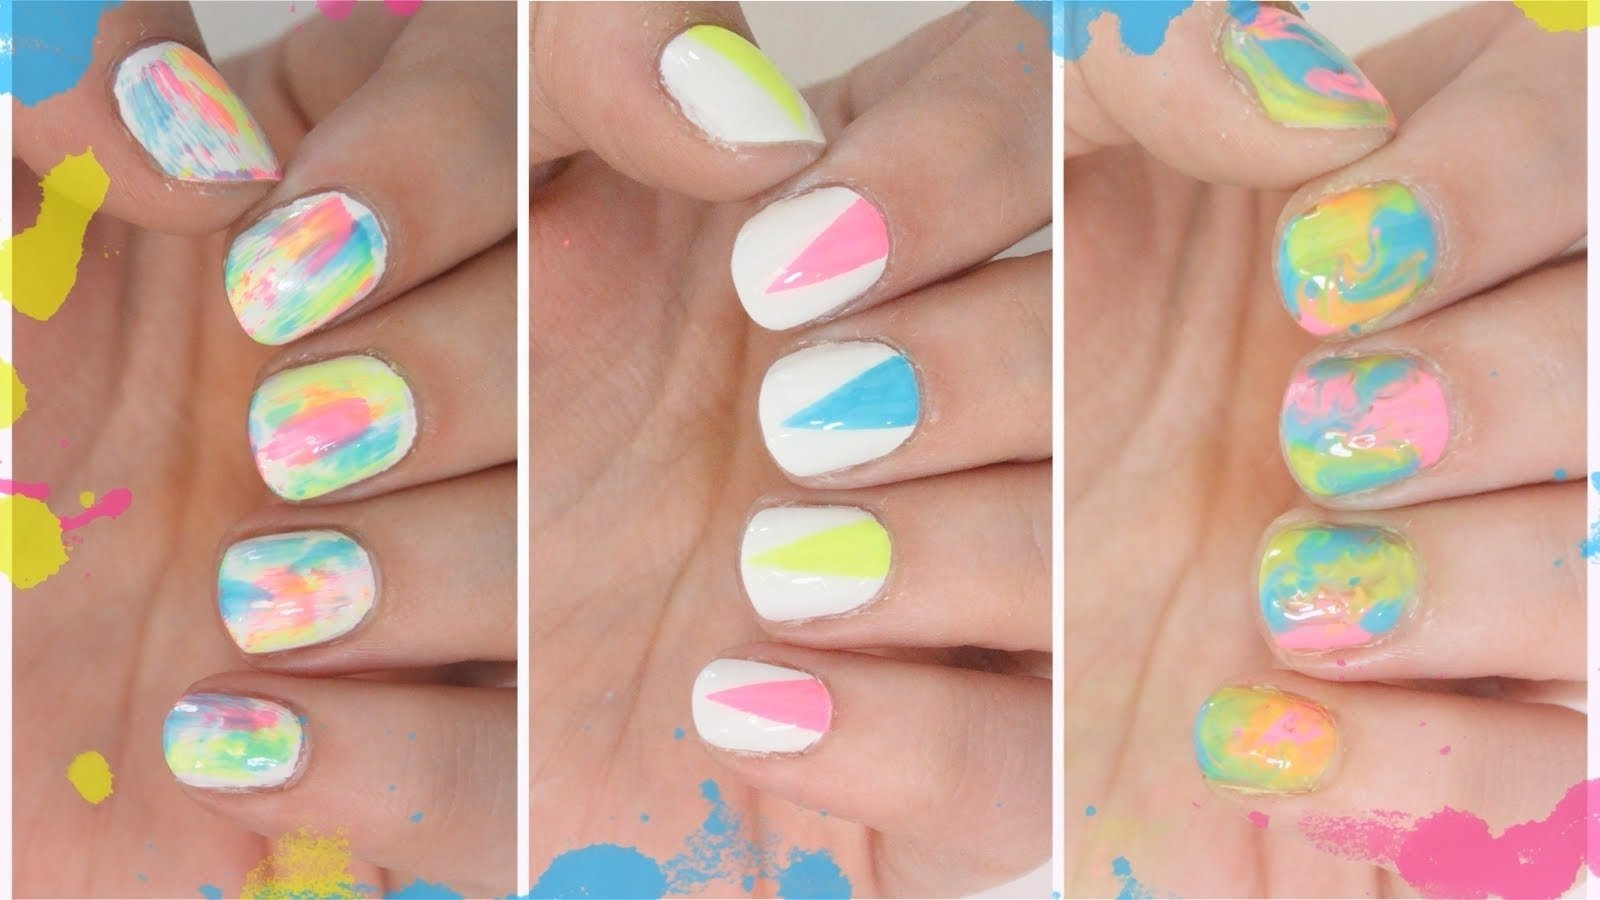 10 Stylish Easy Nail Ideas For Summer top cool summer nail art designs 2018 creative art blog 1 2020